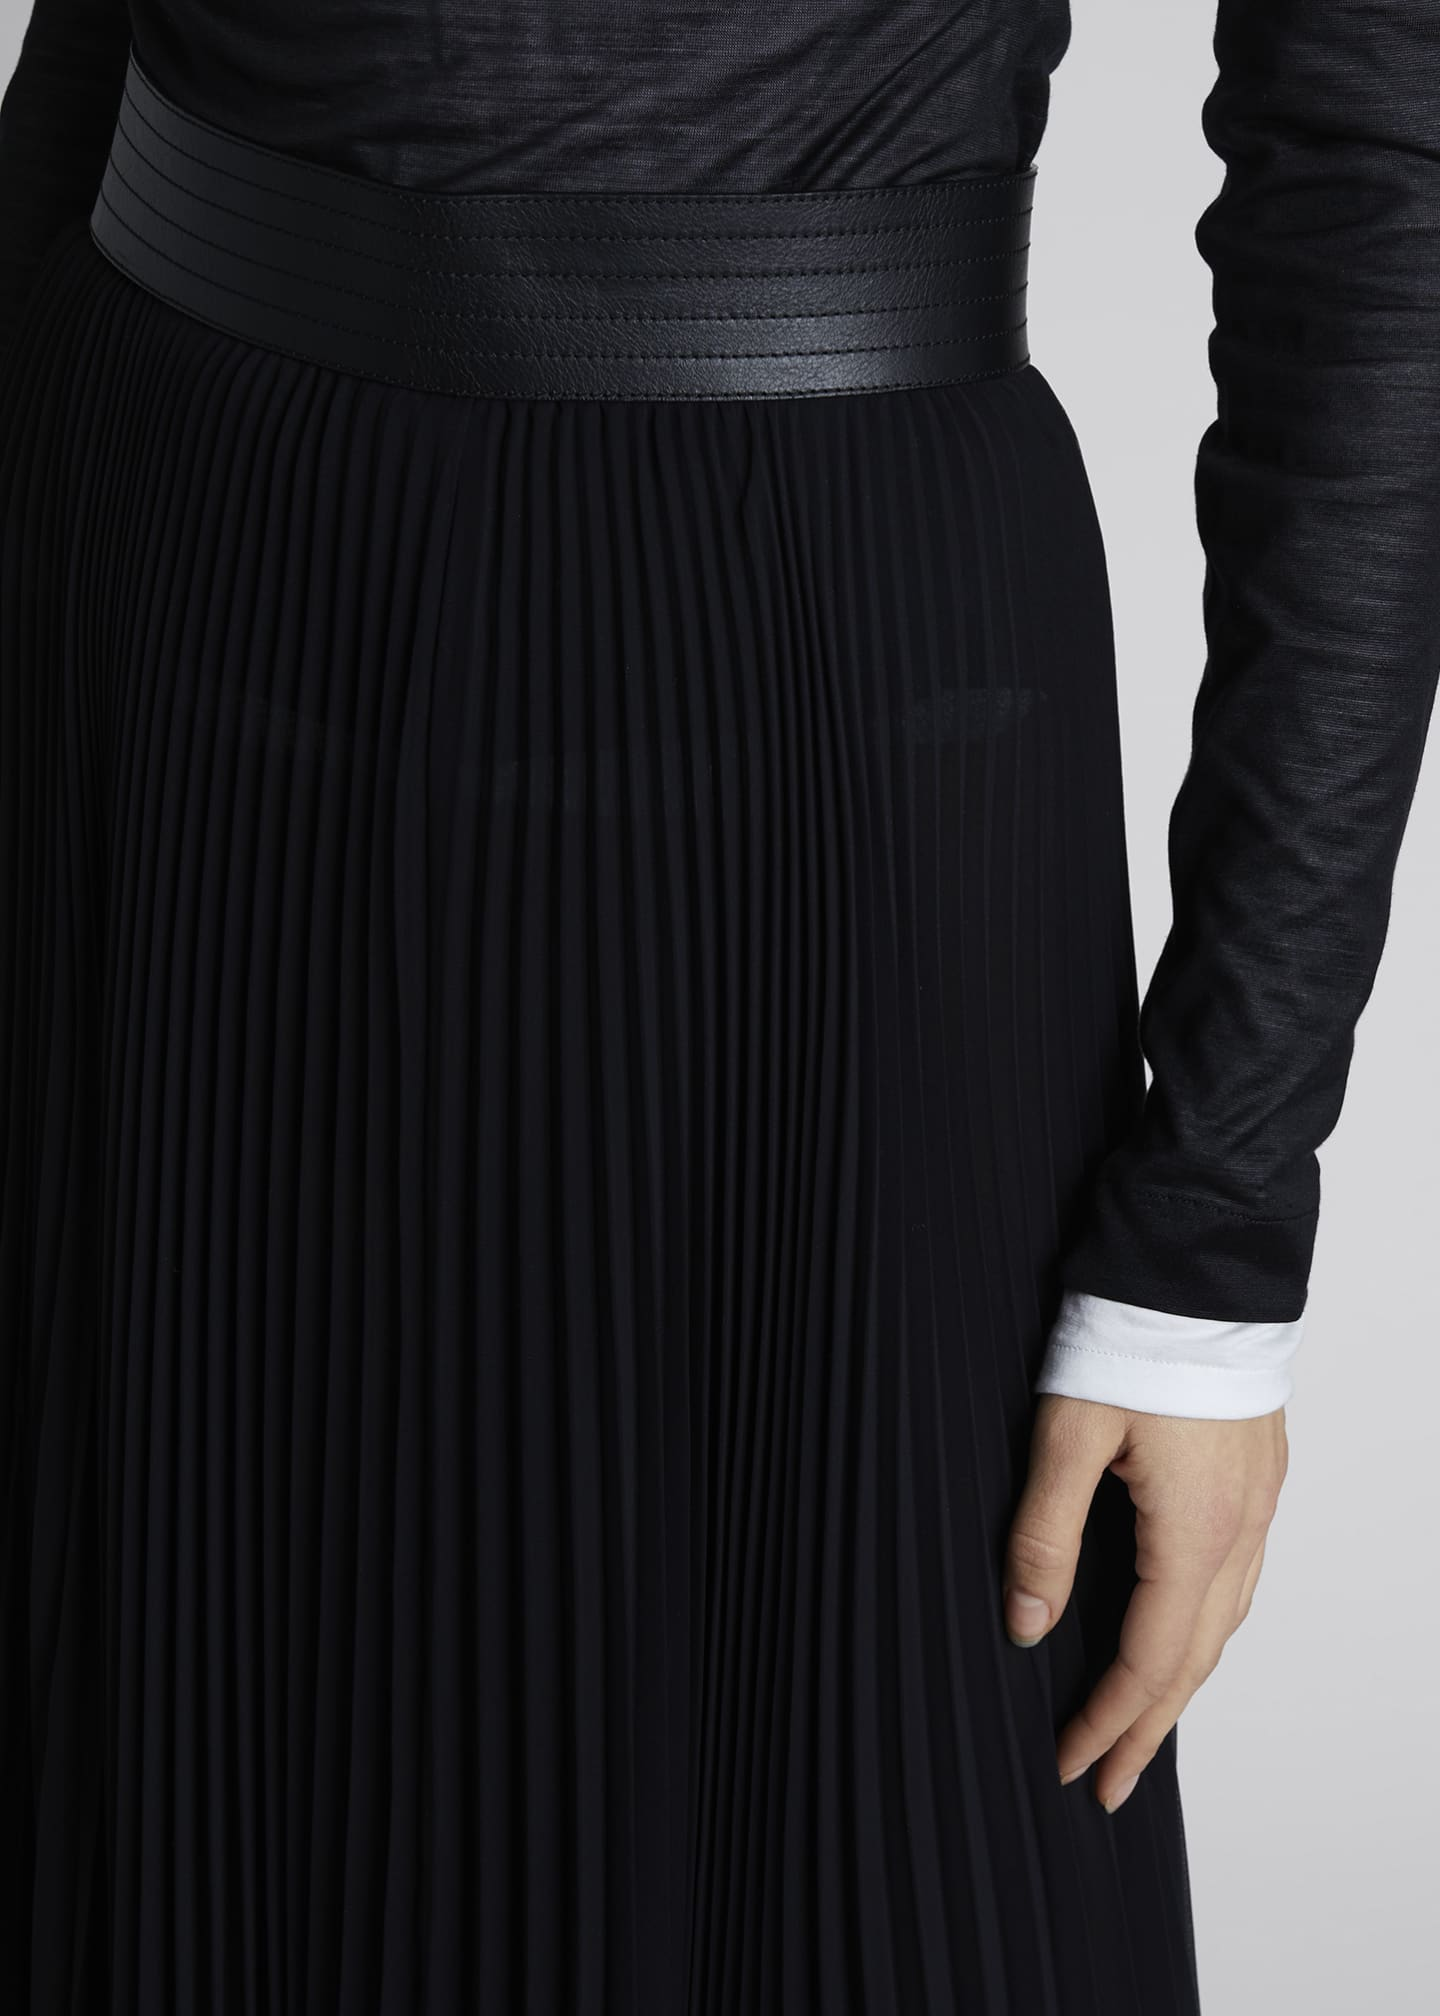 Image 4 of 4: Pleated Asymmetric Midi Skirt with Leather Trim